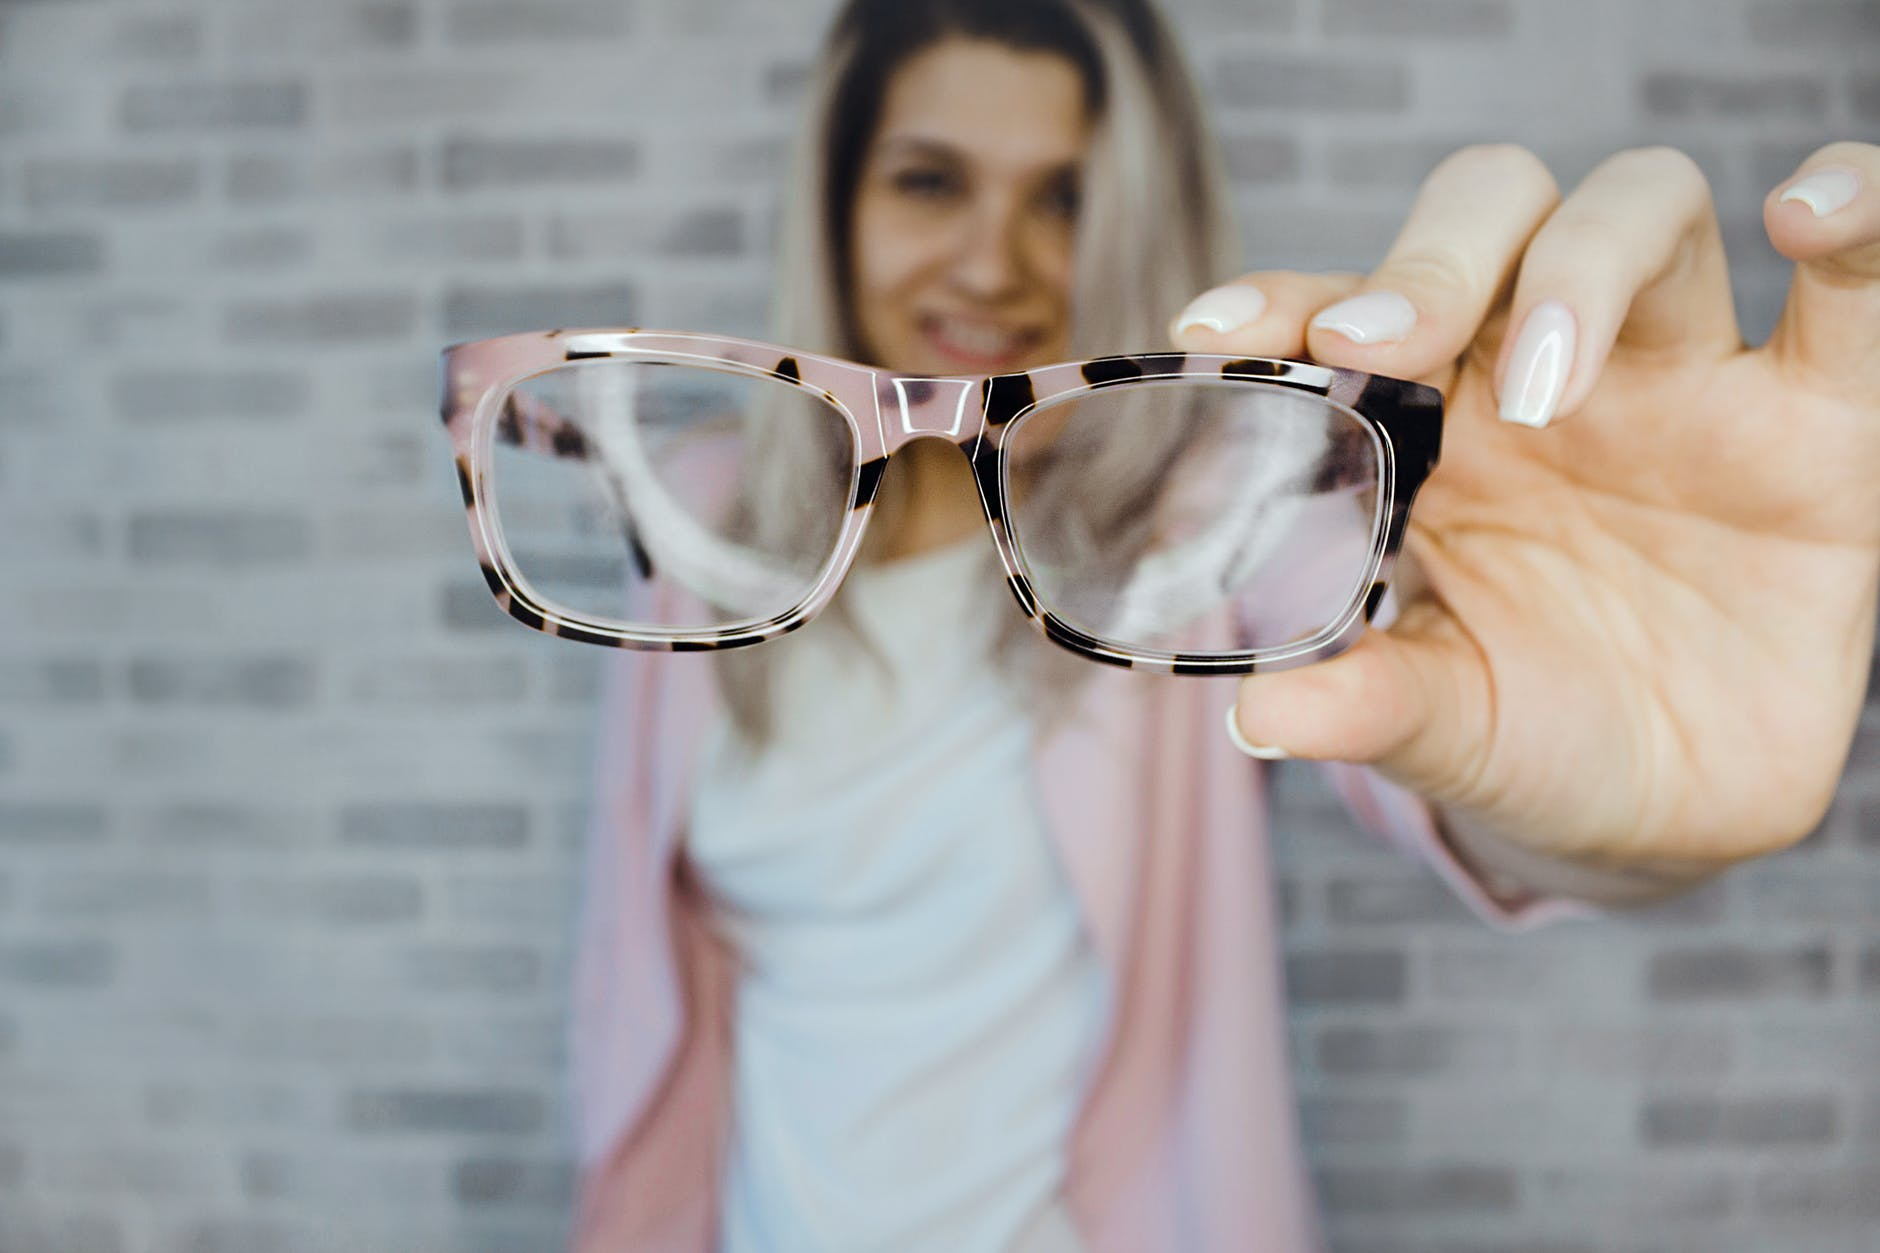 Woman holding glasses out in front of her. The glasses in the foreground have the focus, and she is blurred in the background.